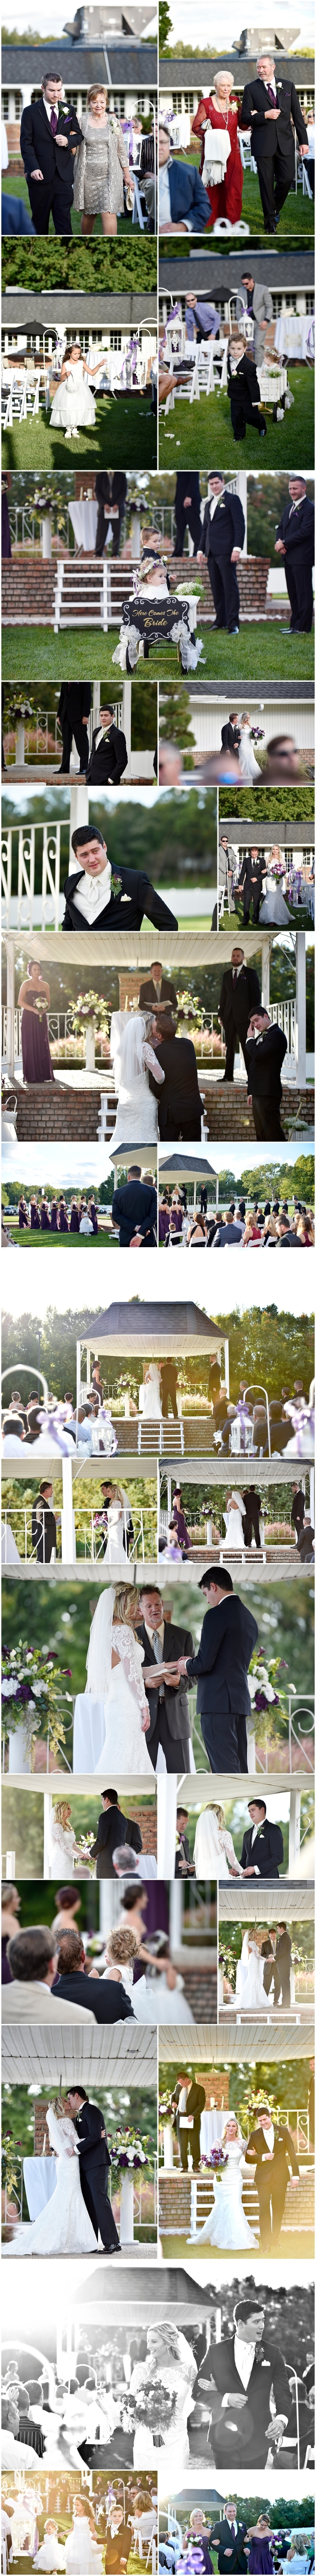 occasions party center wedding ceremony in canal fulton